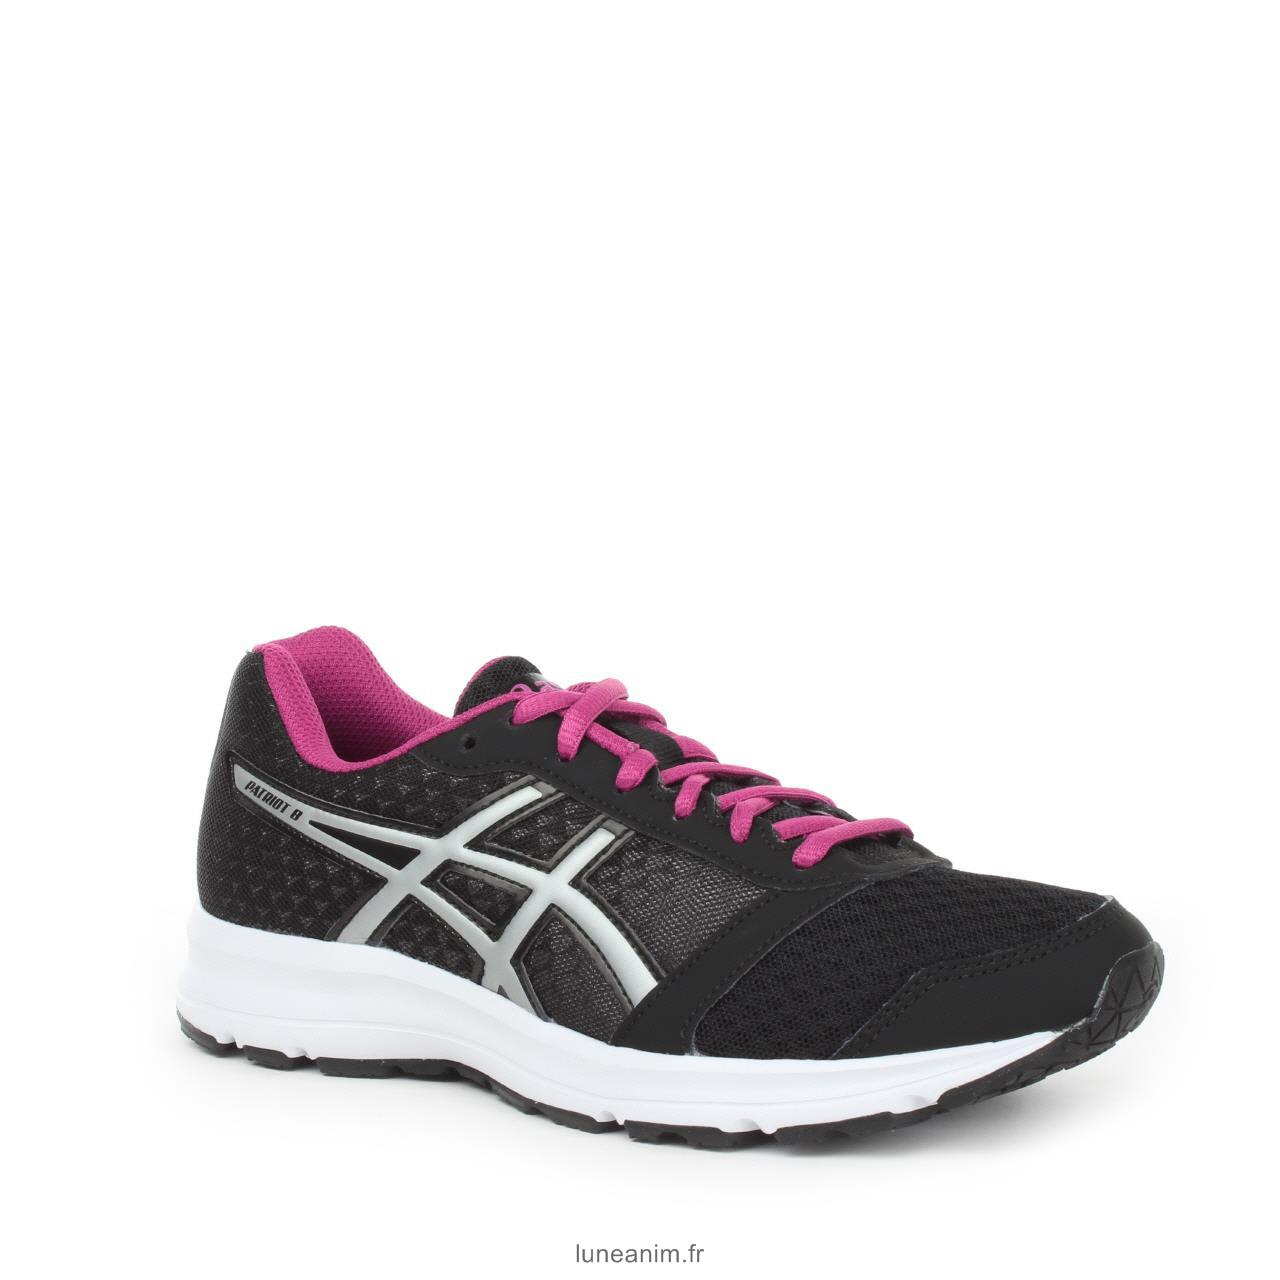 Vente asics baskets chaussure running patriot 8 femme destockage 808